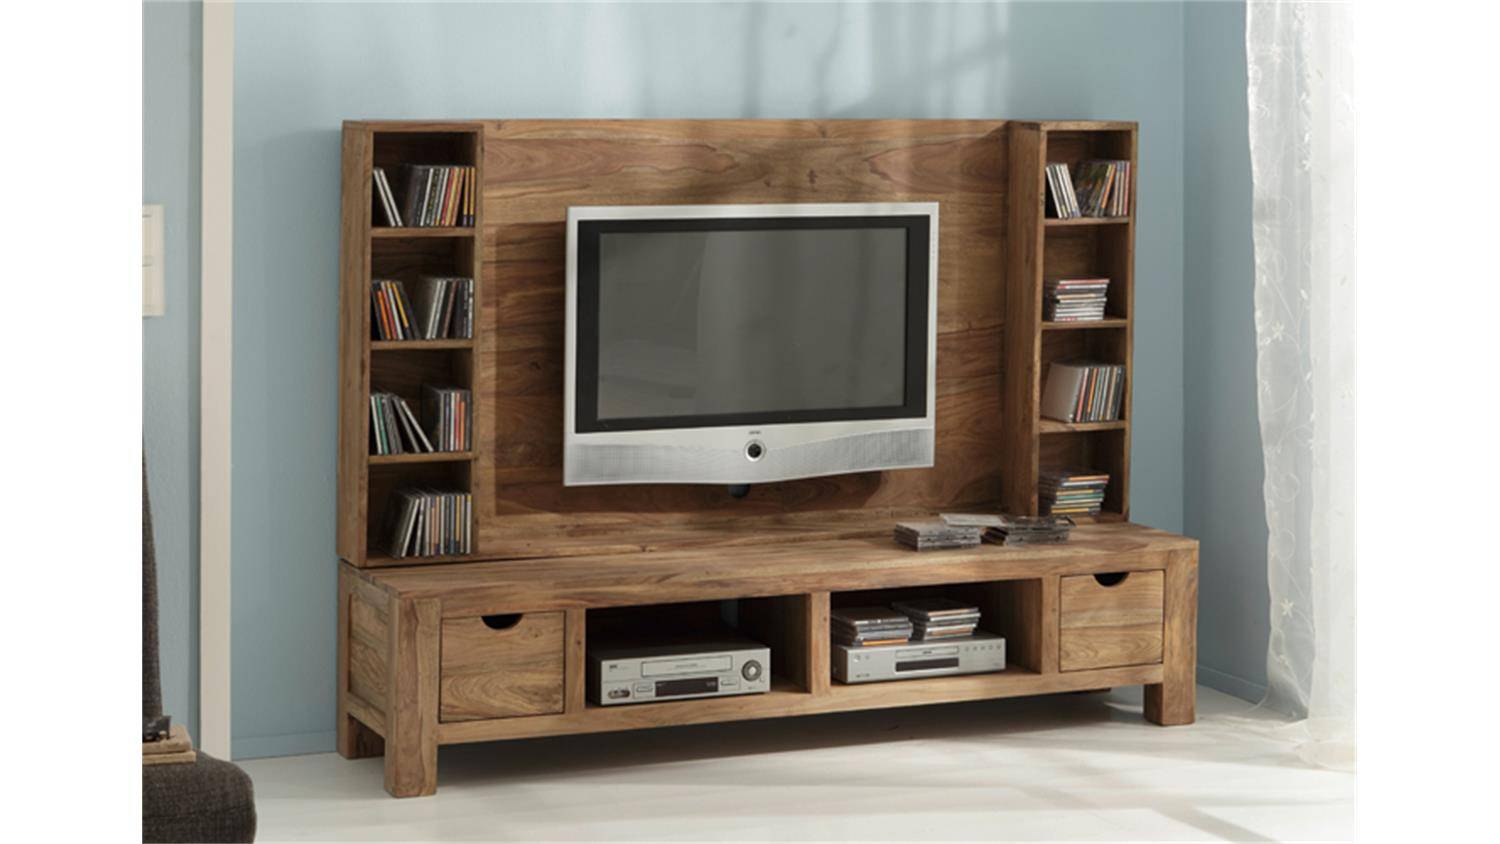 Tv Wände tv wand affordable stijlvol tv meubel interieur living